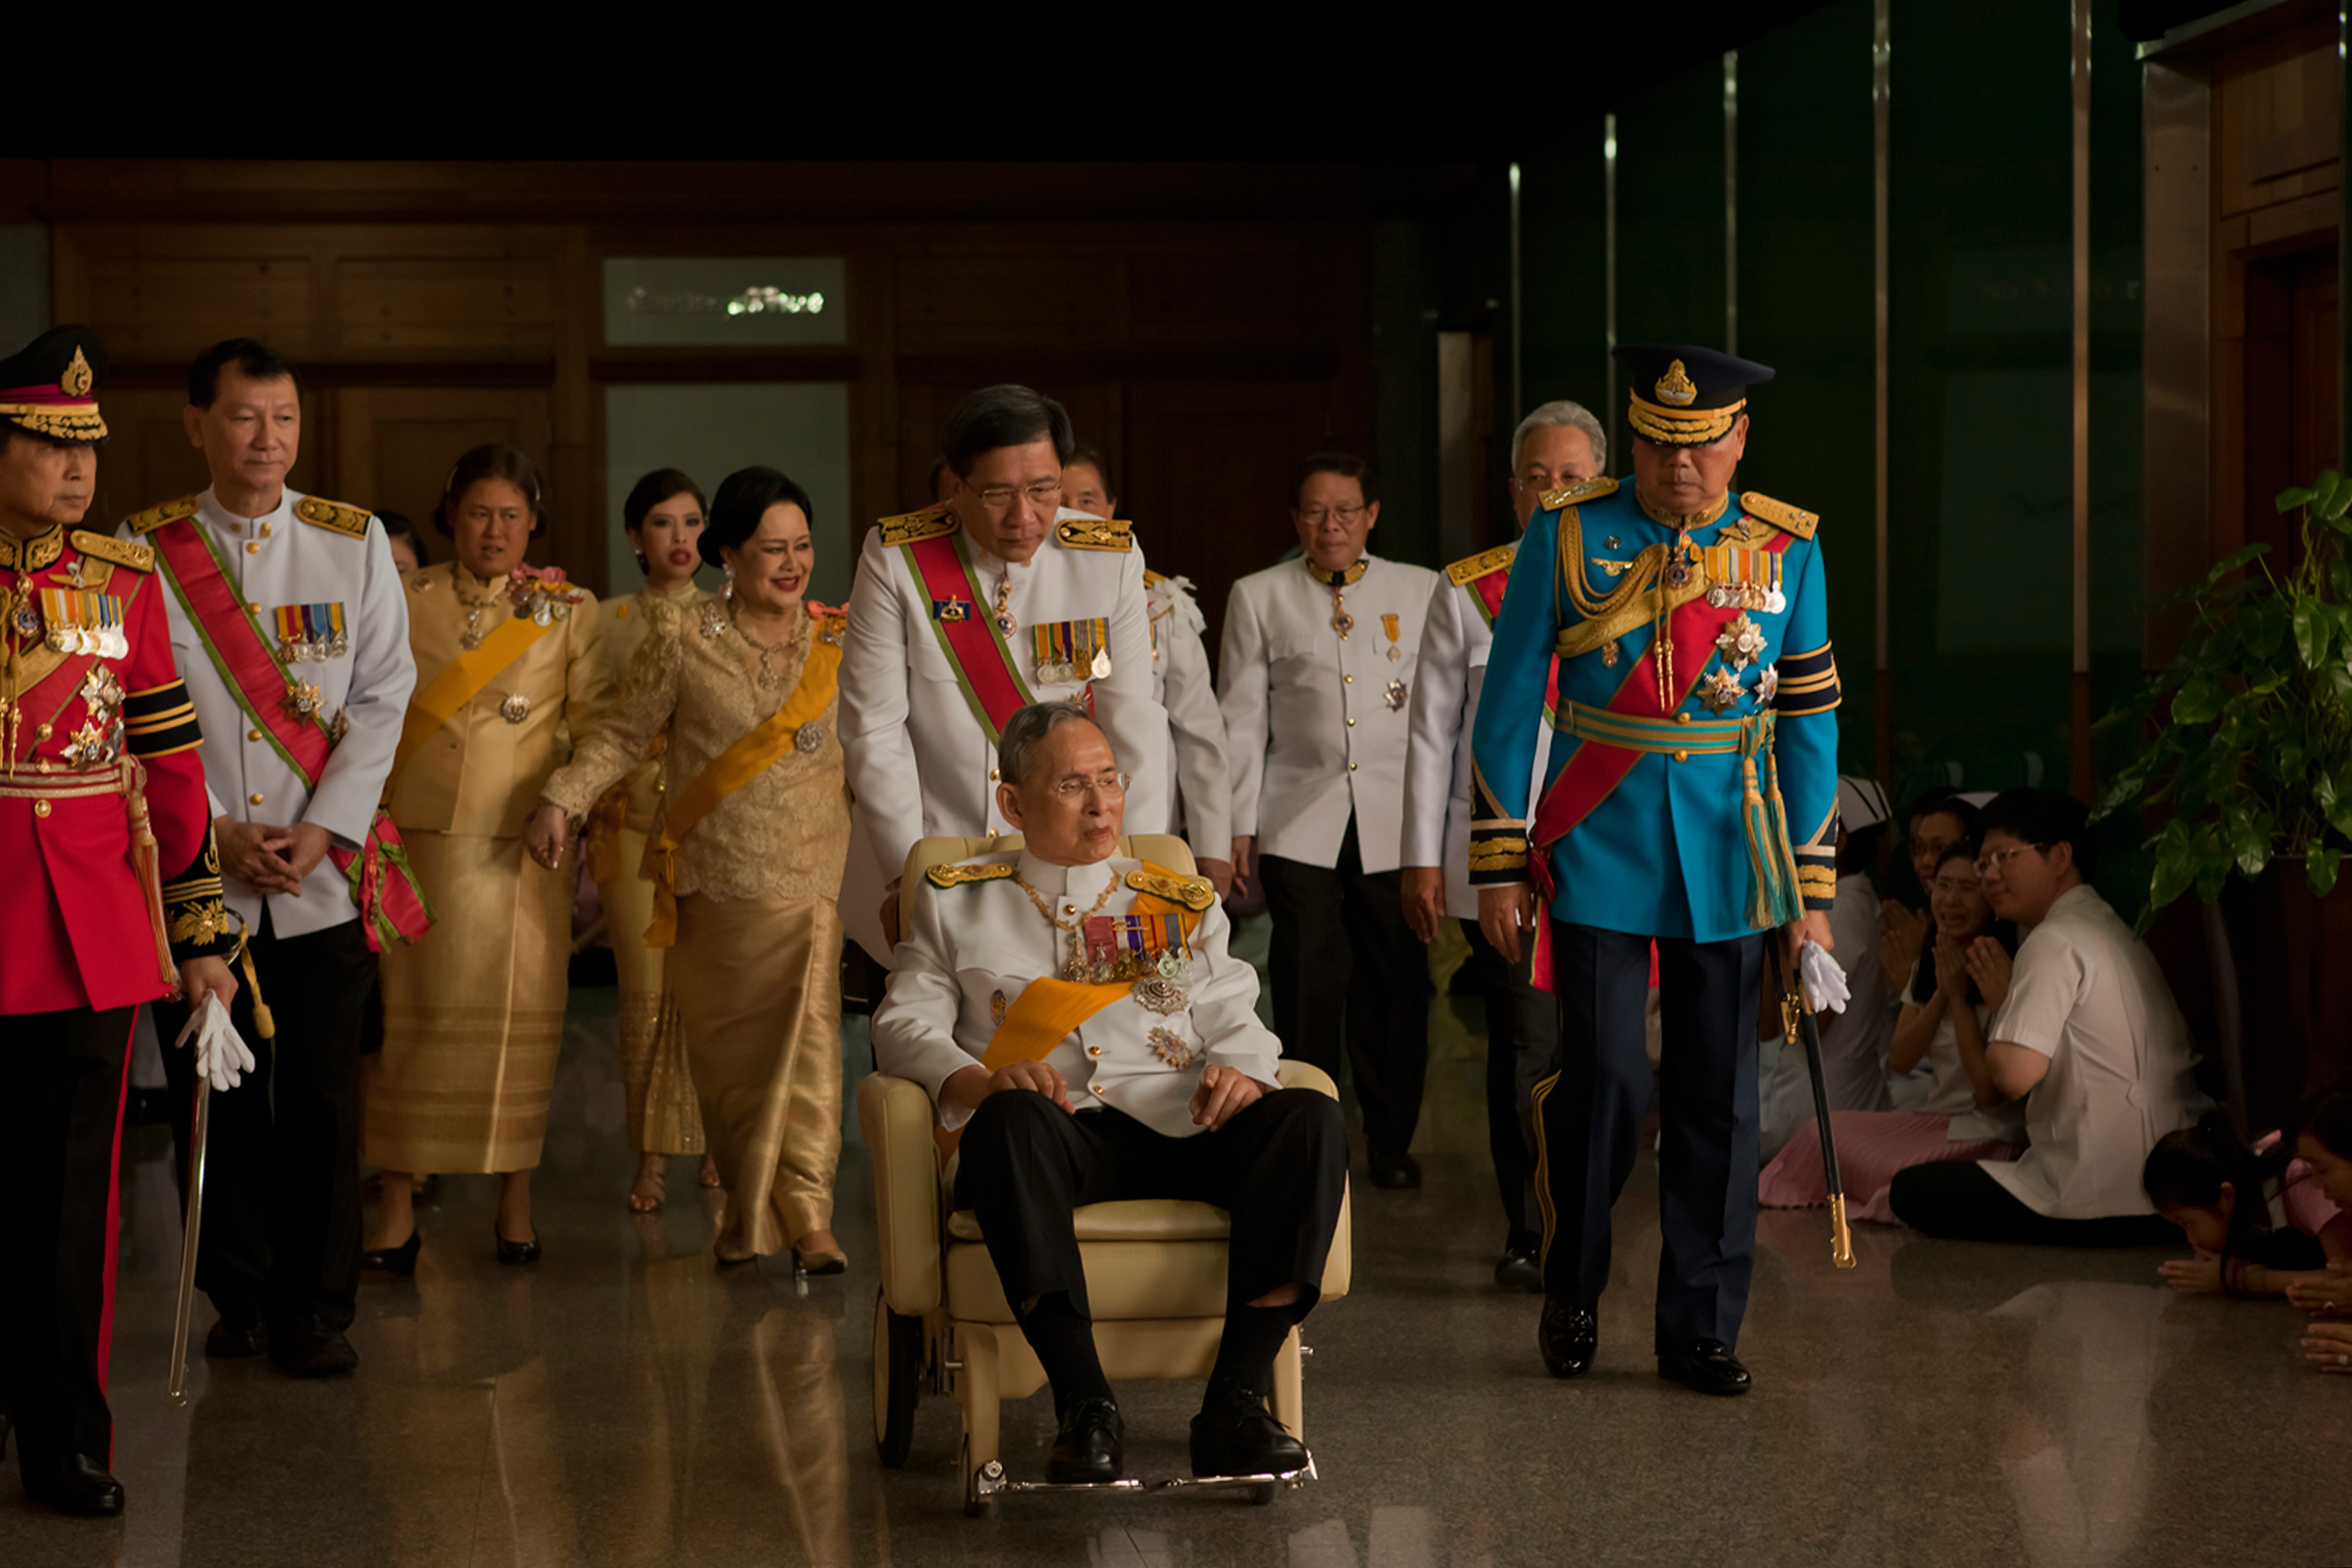 King Bhumibol Adulyadej leaves the Siriraj Hospital for a birthday ceremony at the Grand Palace in Bangkok on Dec. 5, 2011